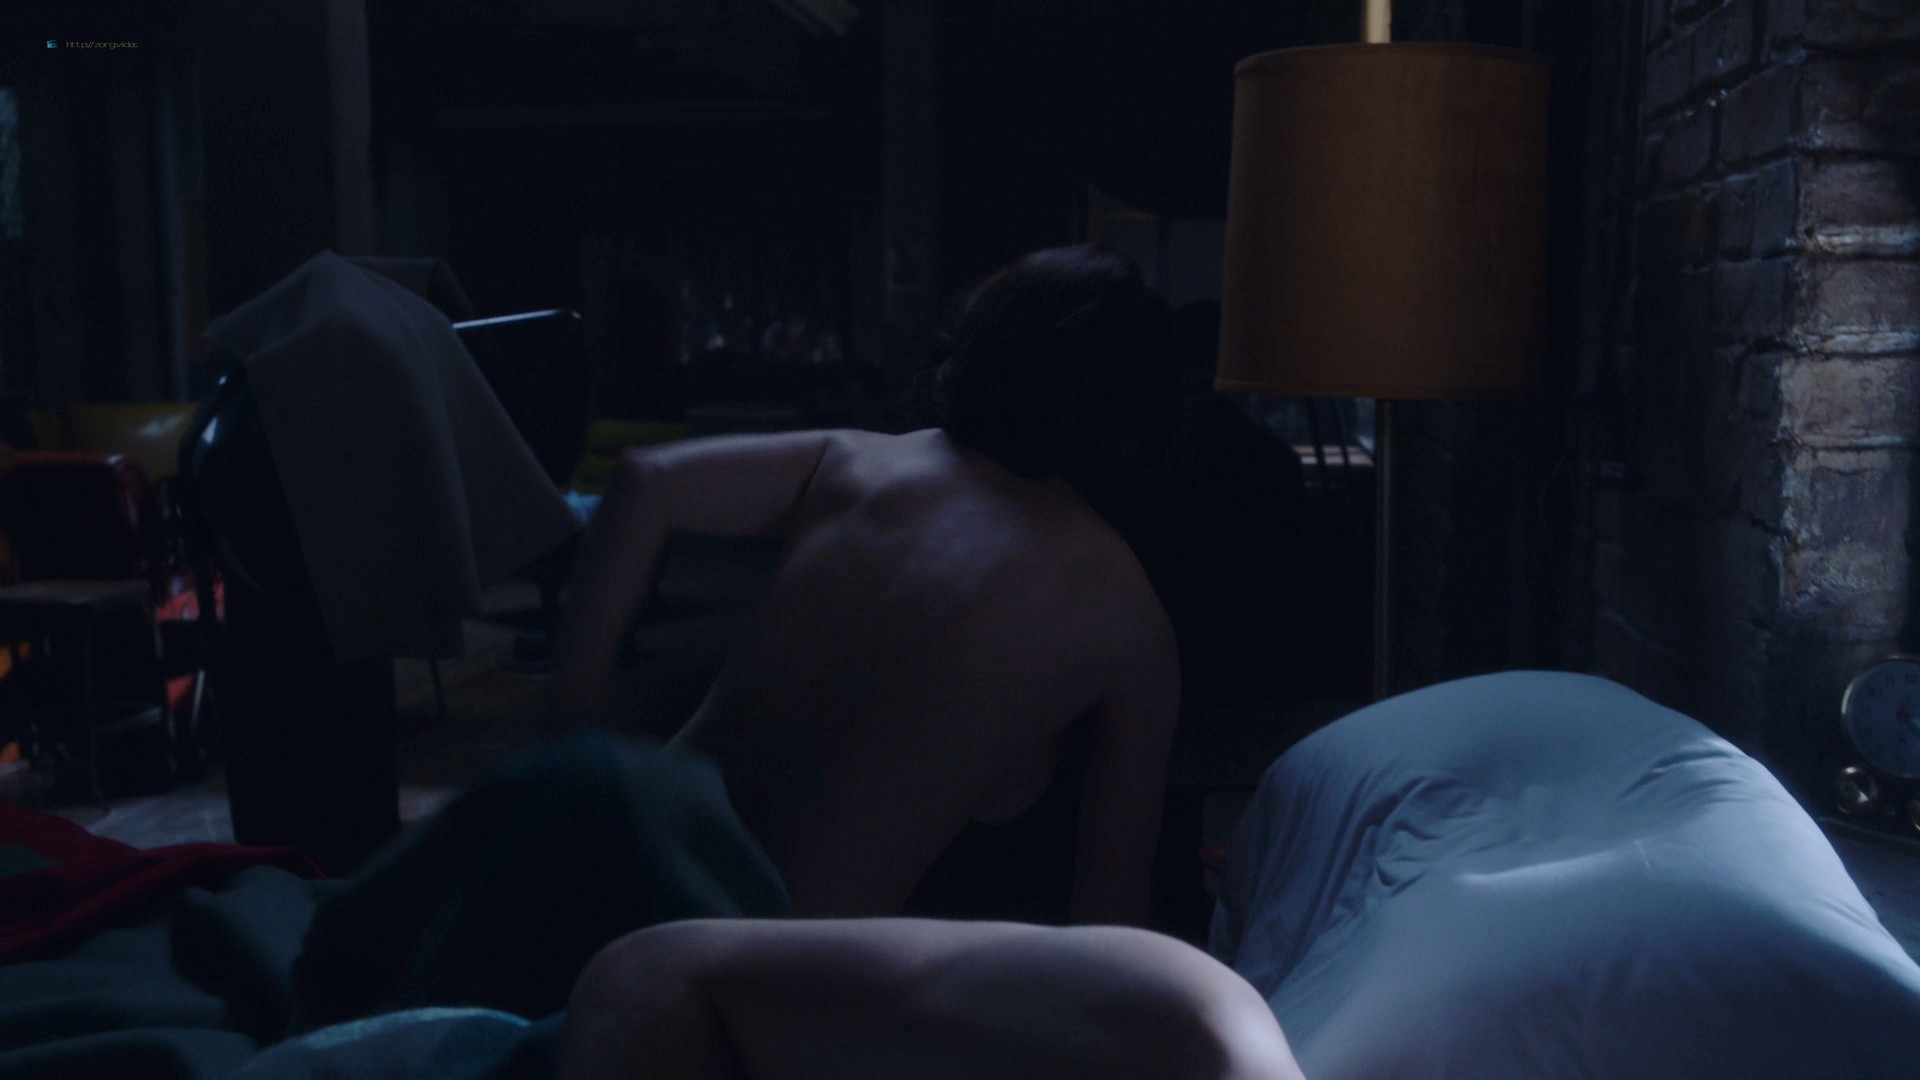 Rachel Brosnahan hot and sexy - The Marvelous Mrs. Maisel (2019) S3 HD 1080p (14)